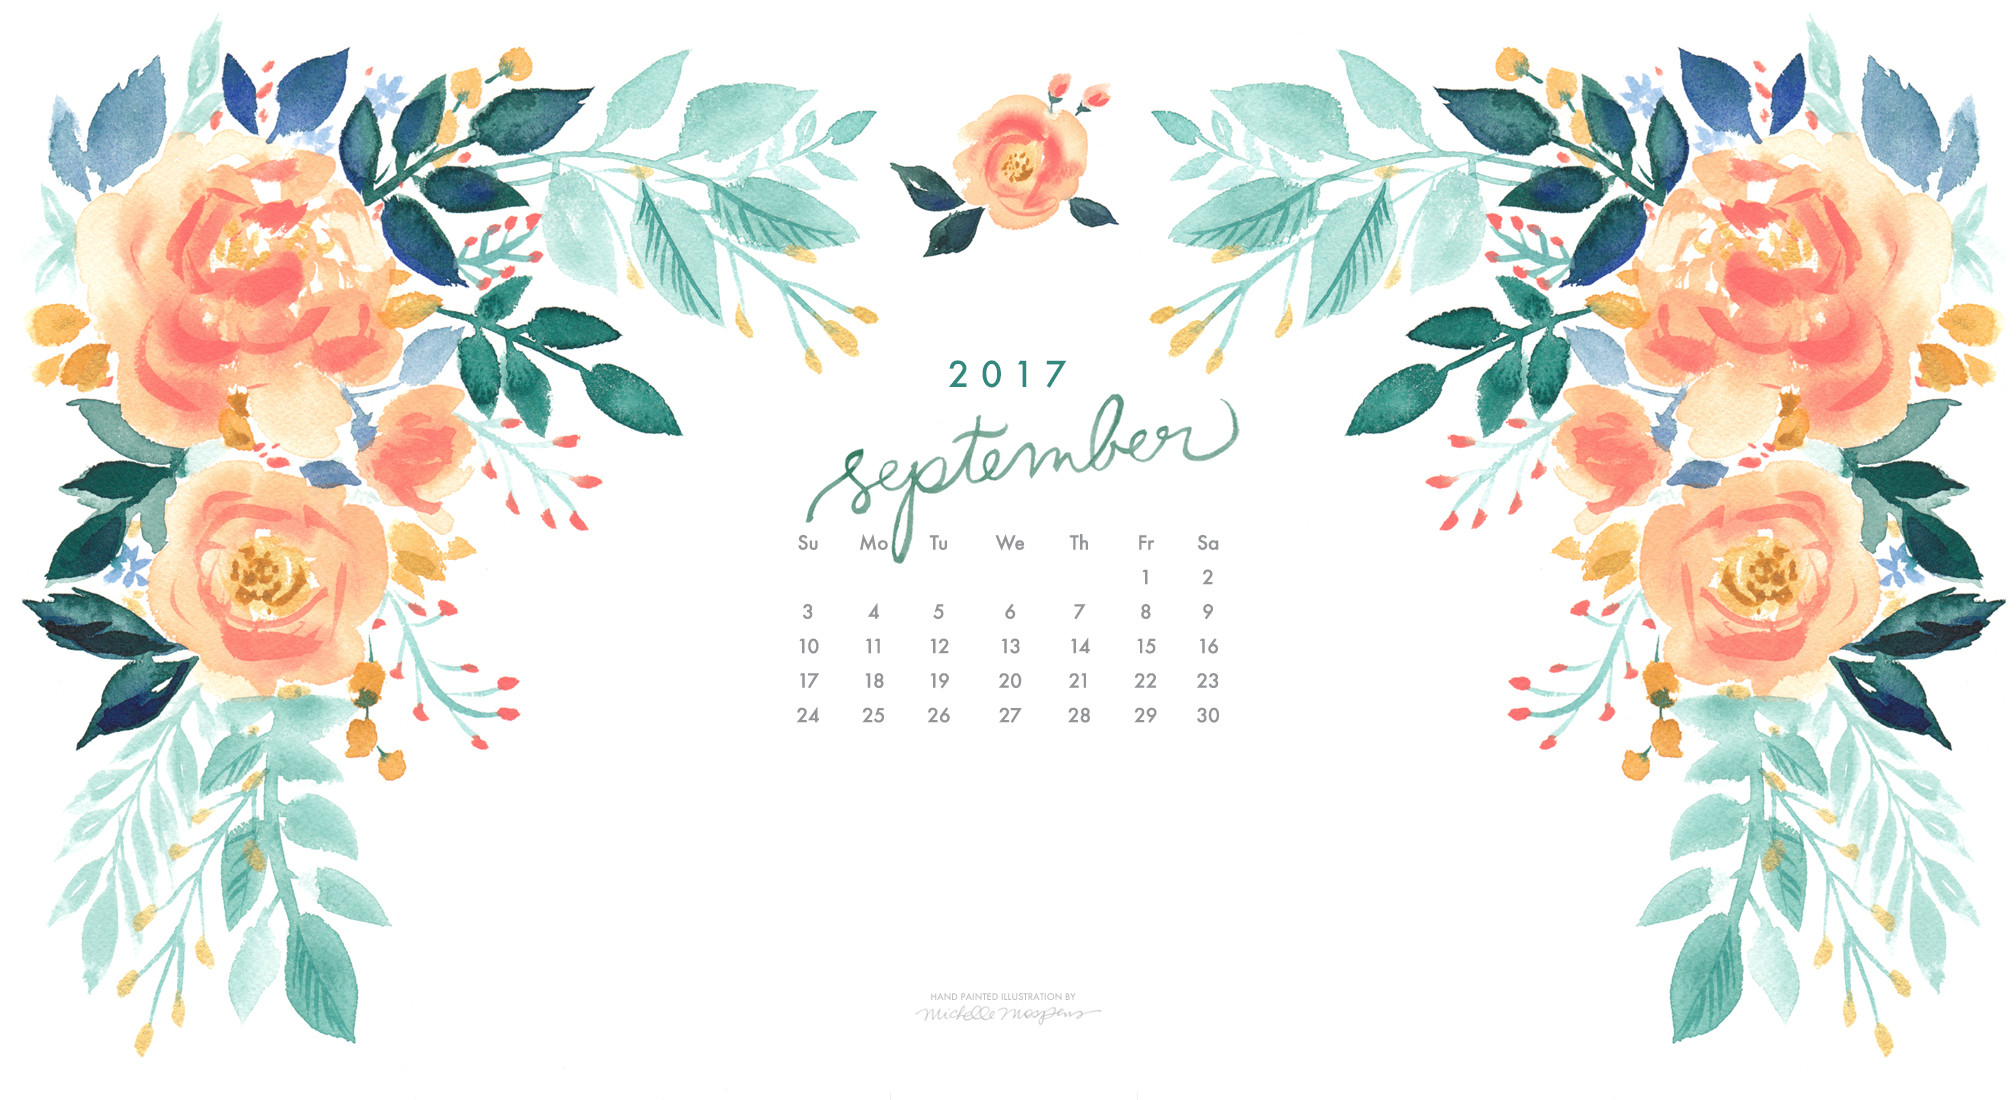 2016x1100 Pretty peach blooms watercolor September 2017 calendar wallpaper for your  computer. 100% original art